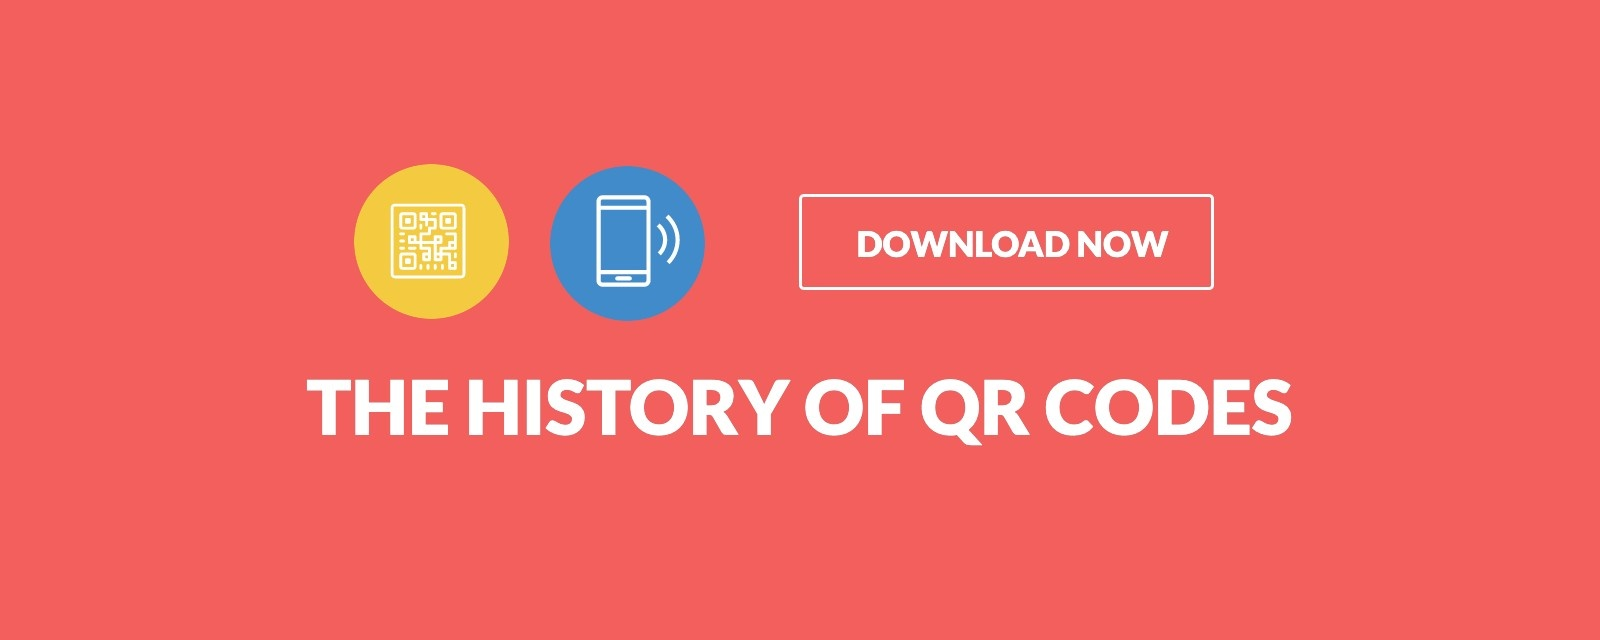 history of the qr codes